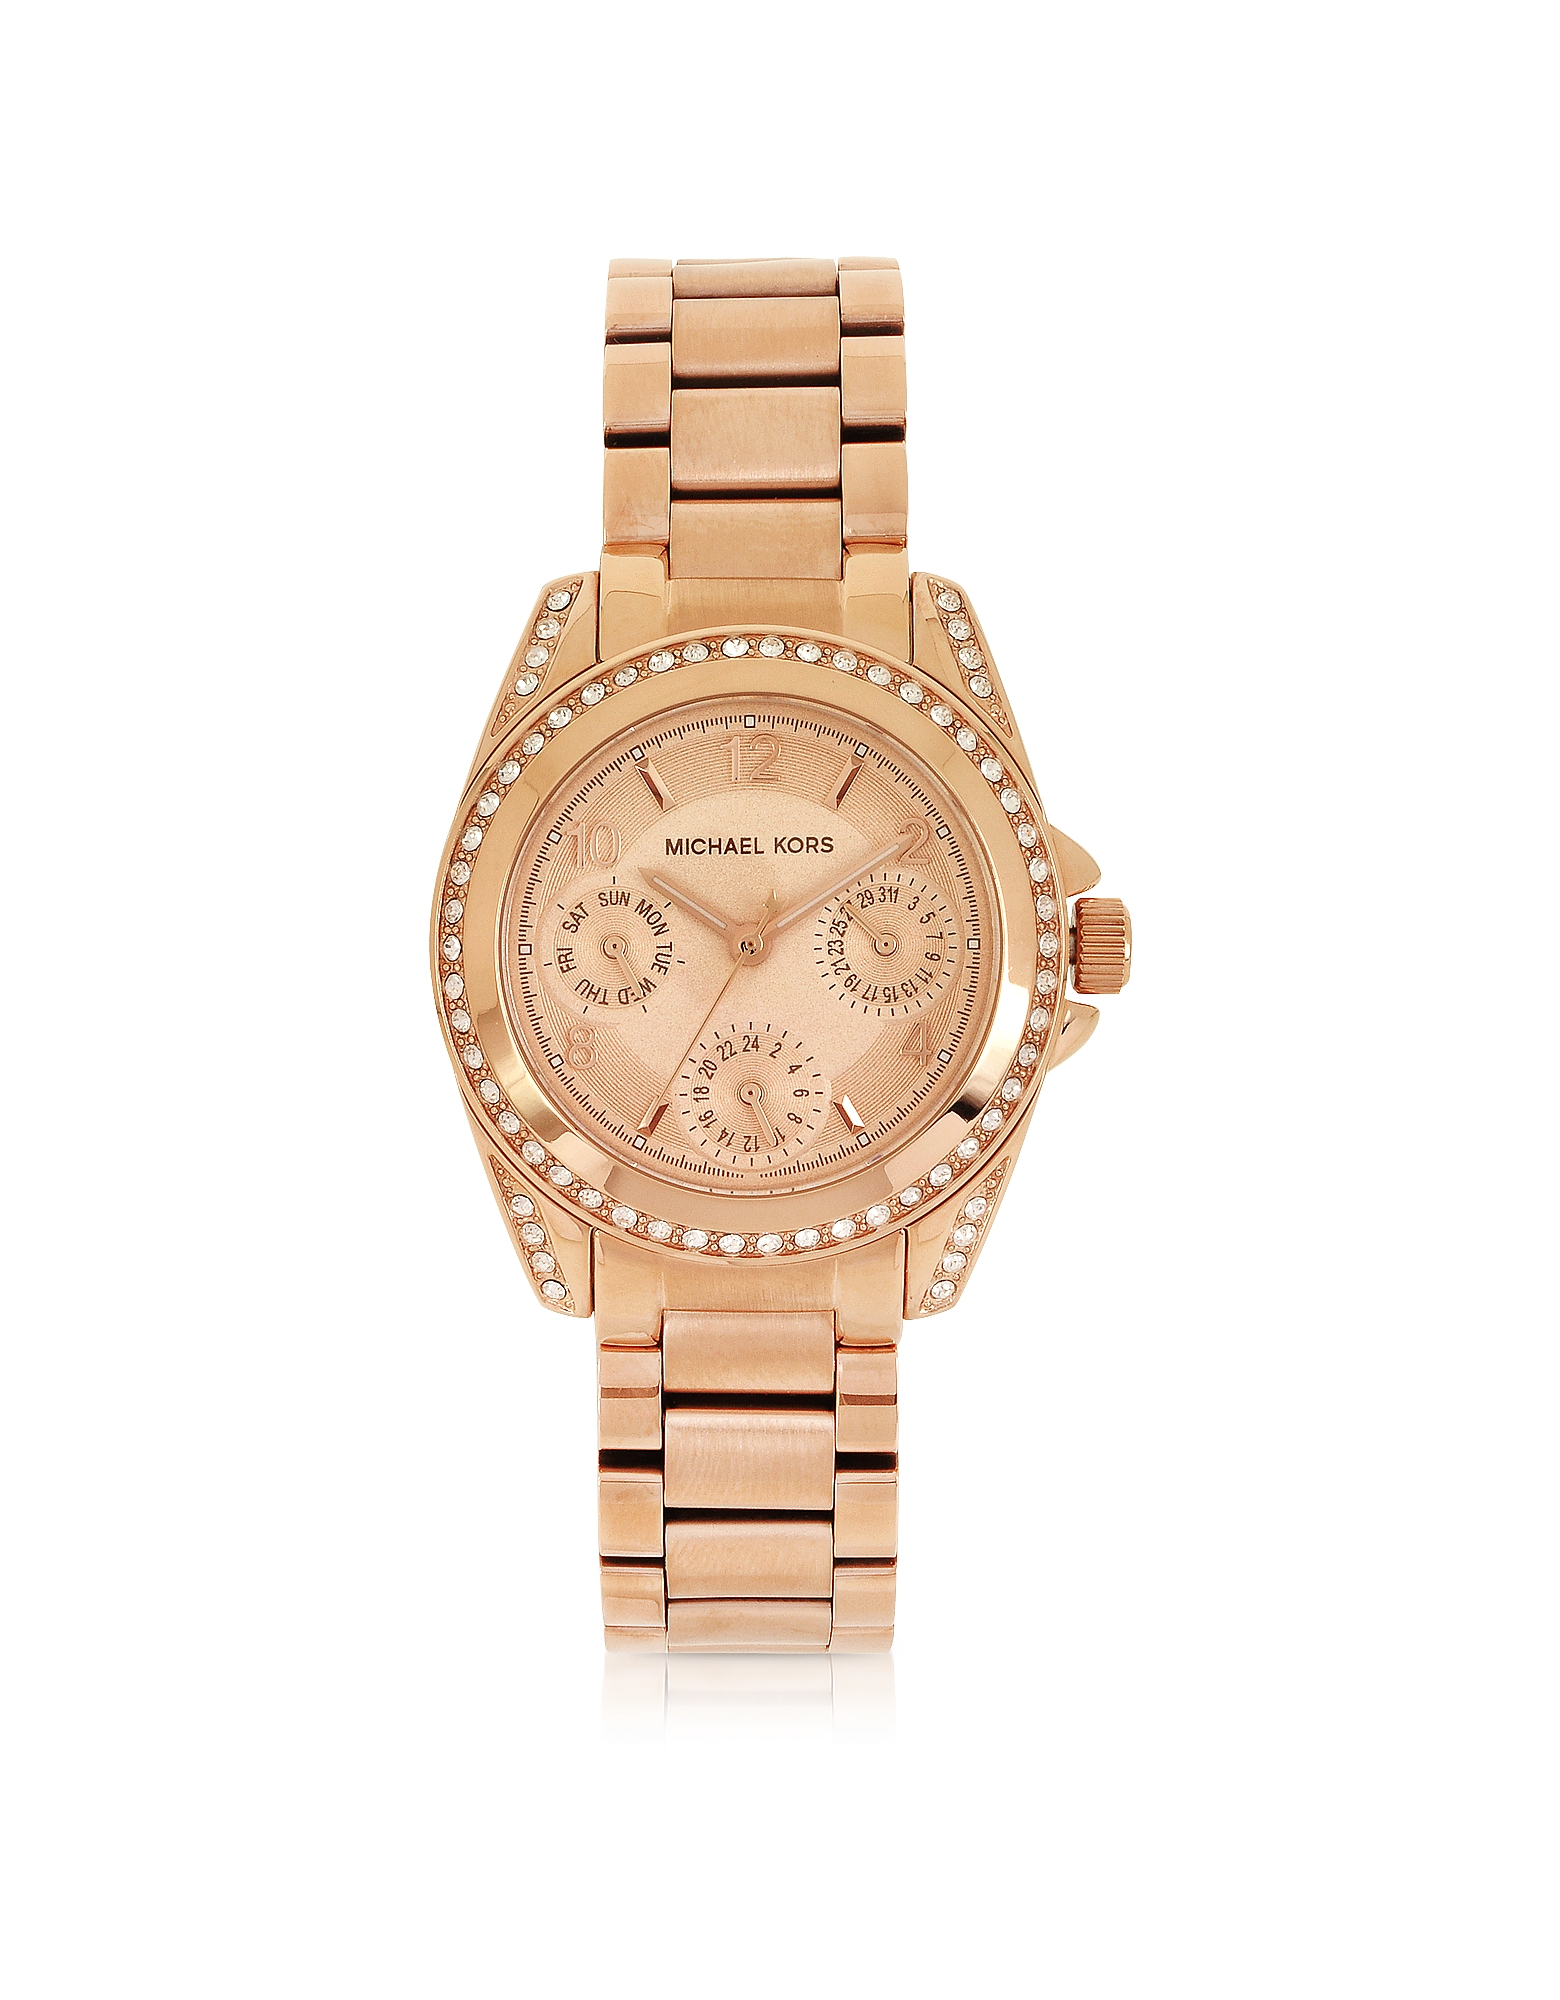 Michael Kors Designer Women's Watches, Rose Golden Mini-Size Blair Multi-Function Glitz Watch